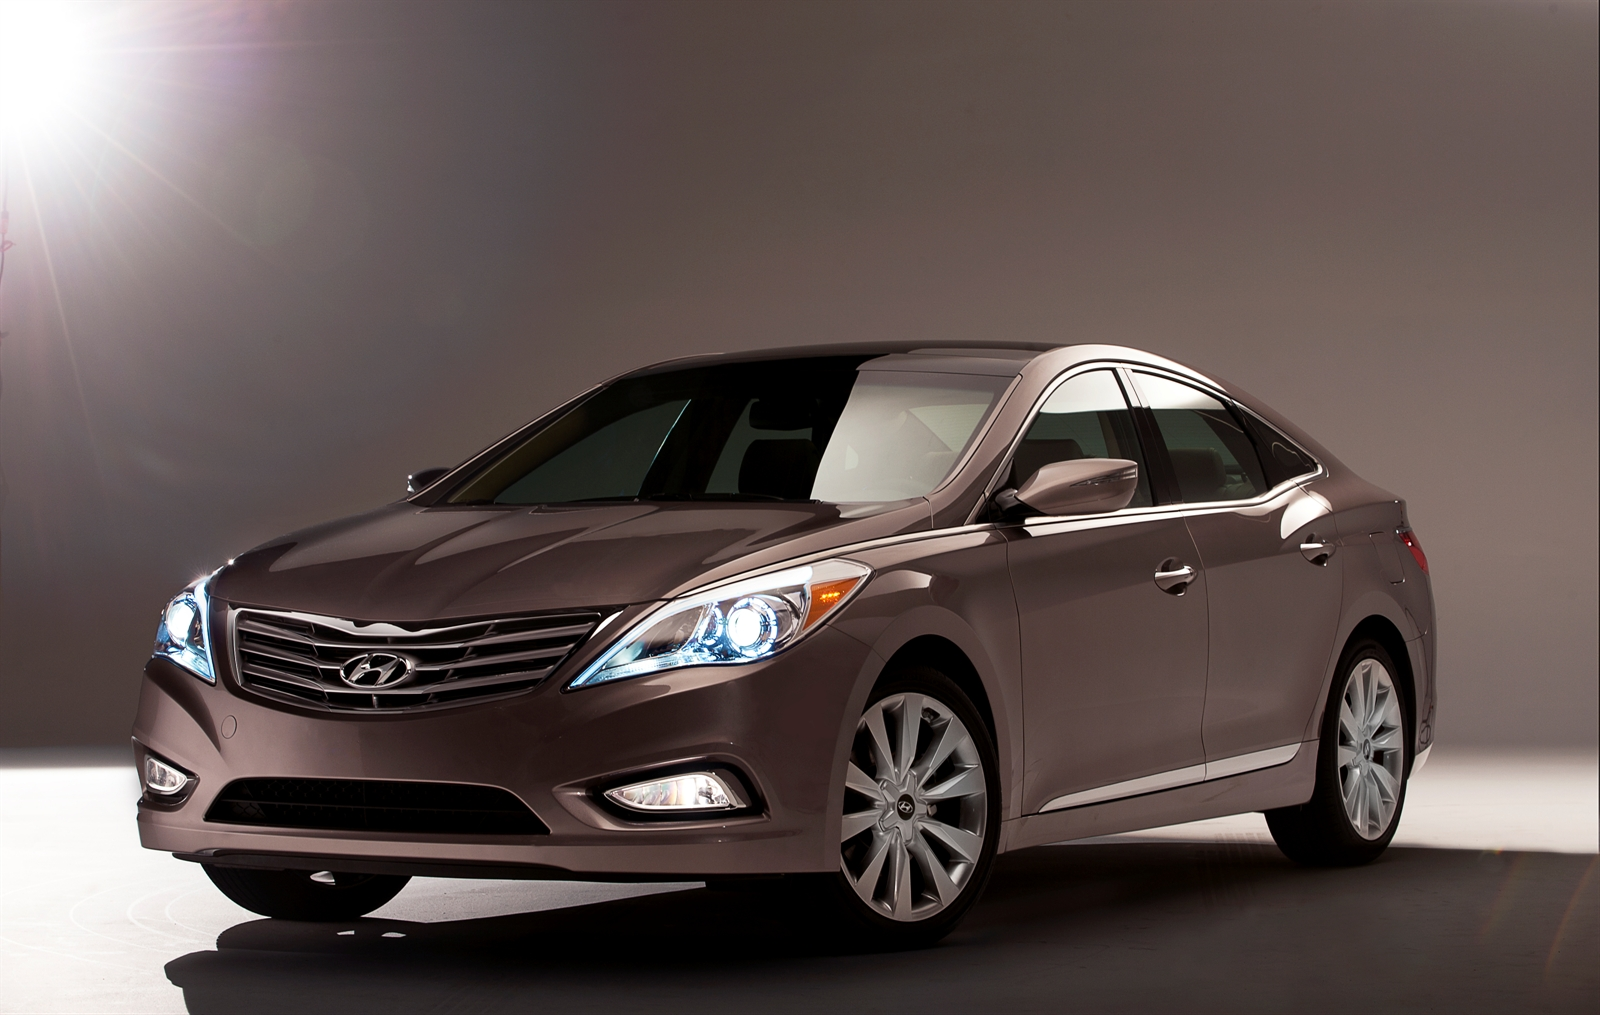 Hyundai Azera Specs Photos 2012 2013 2014 2015 2016 2017